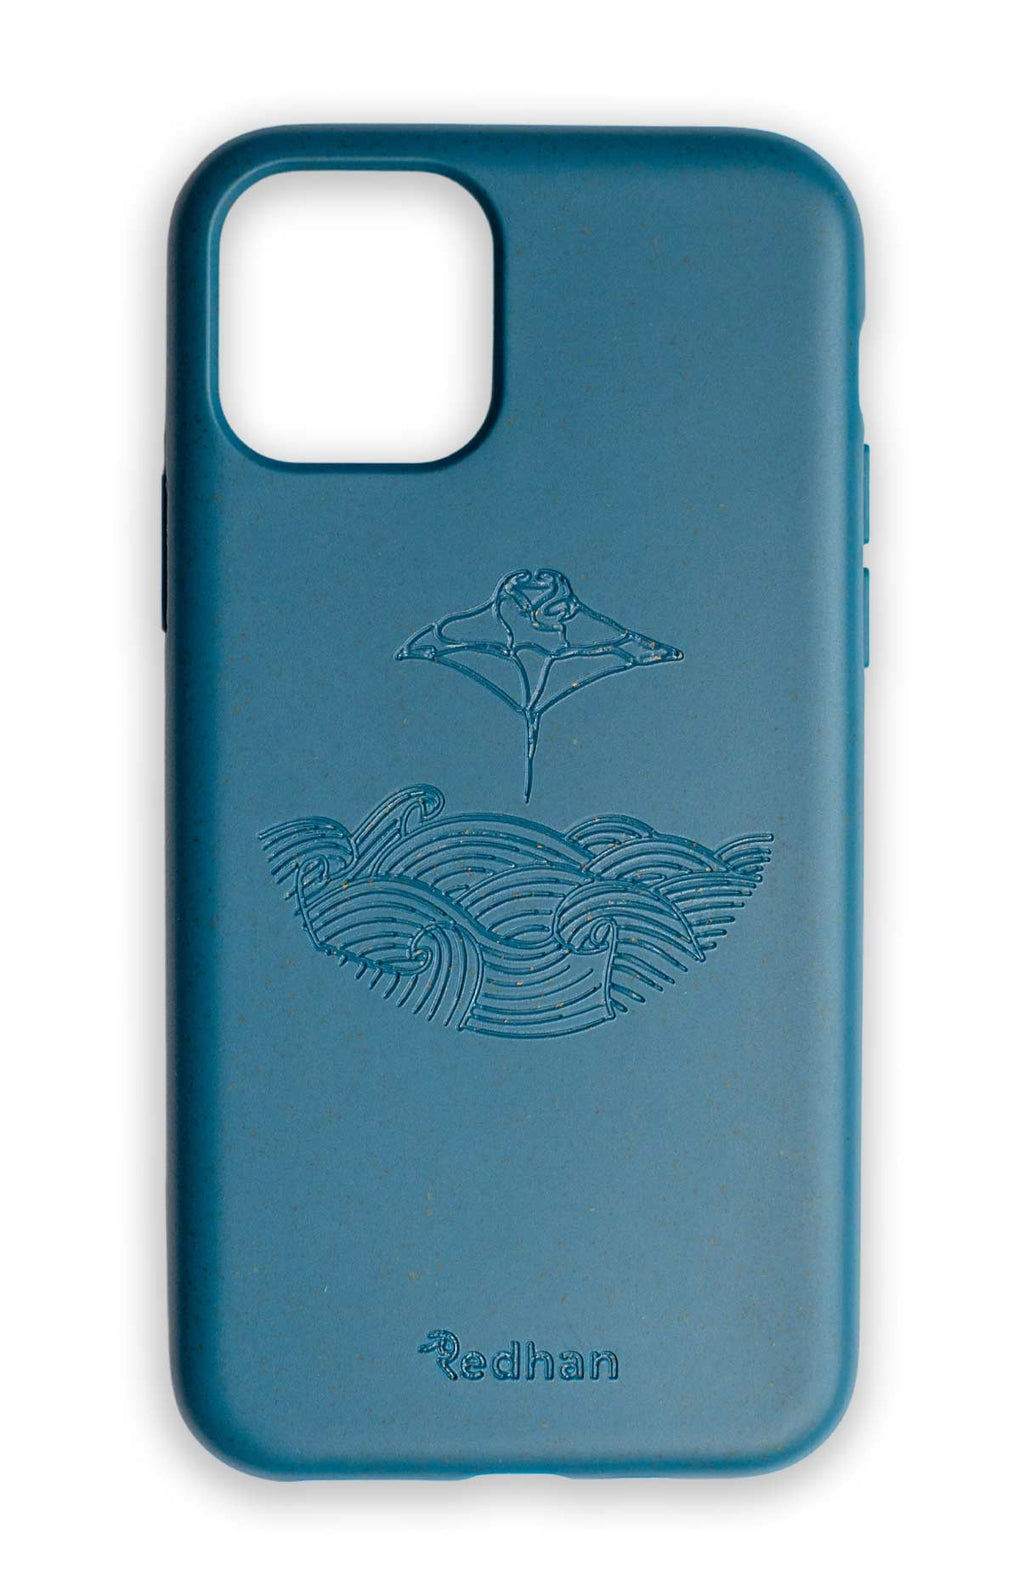 Manta Ray en azul navy - iPhone 11 Pro Max